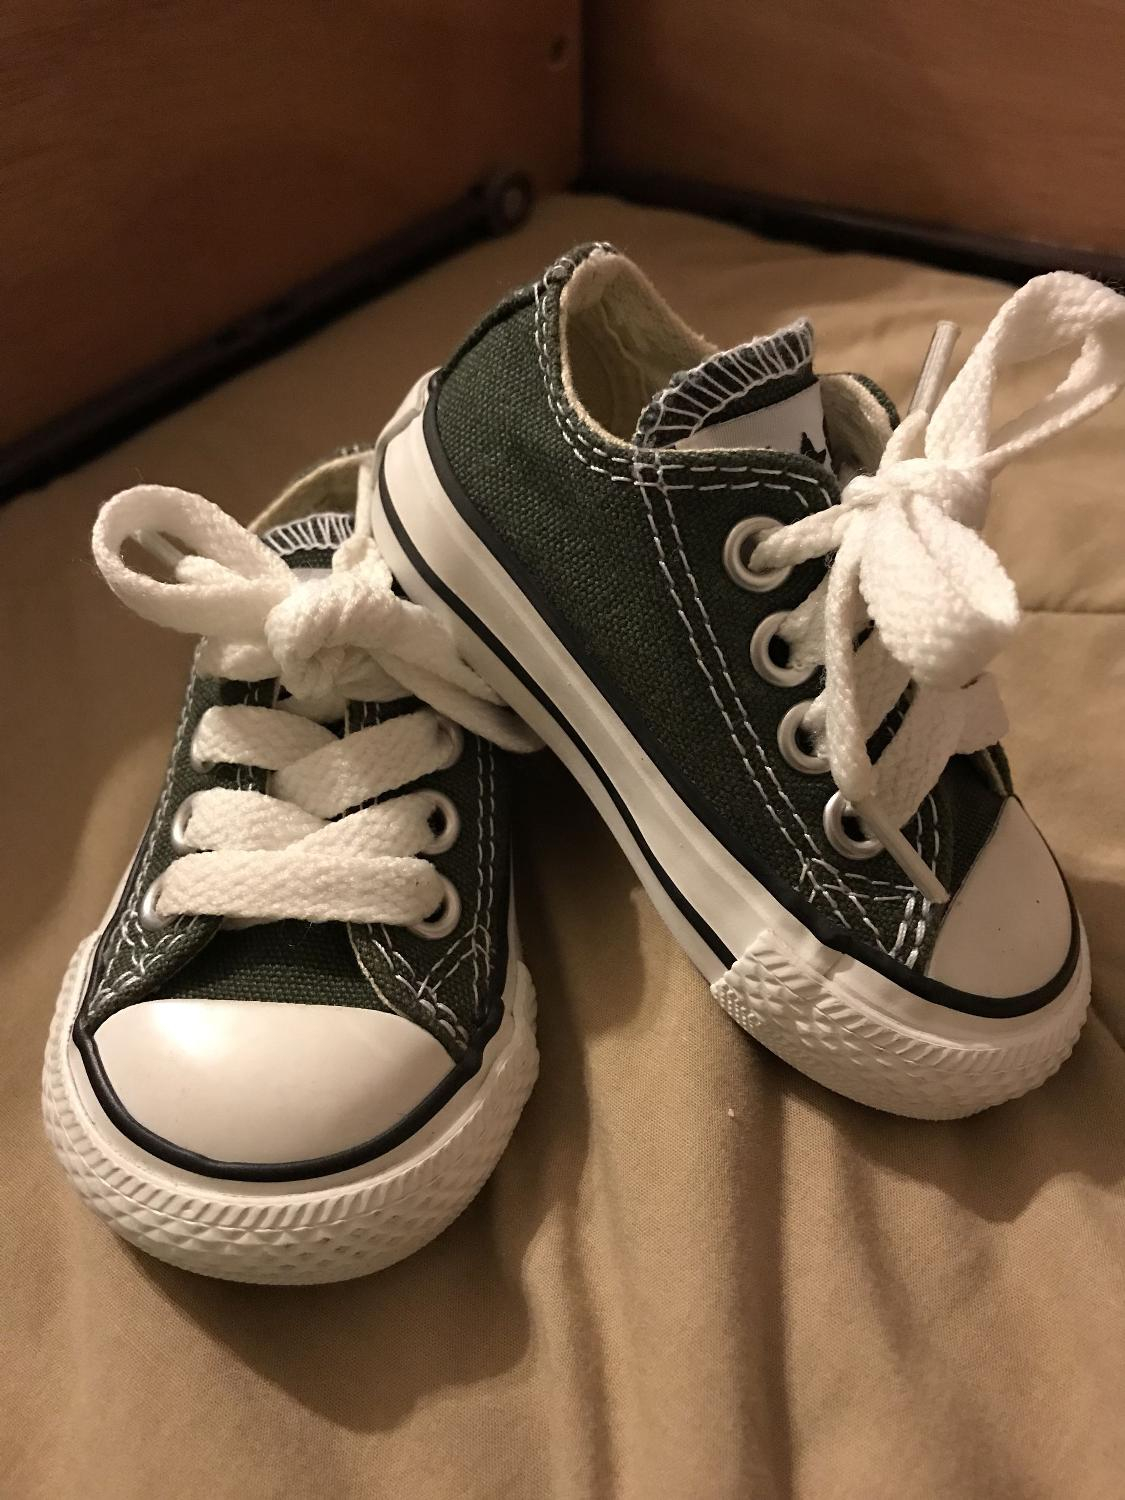 Best Infant Converse Size 2 for sale in Friendswood afa7eac76